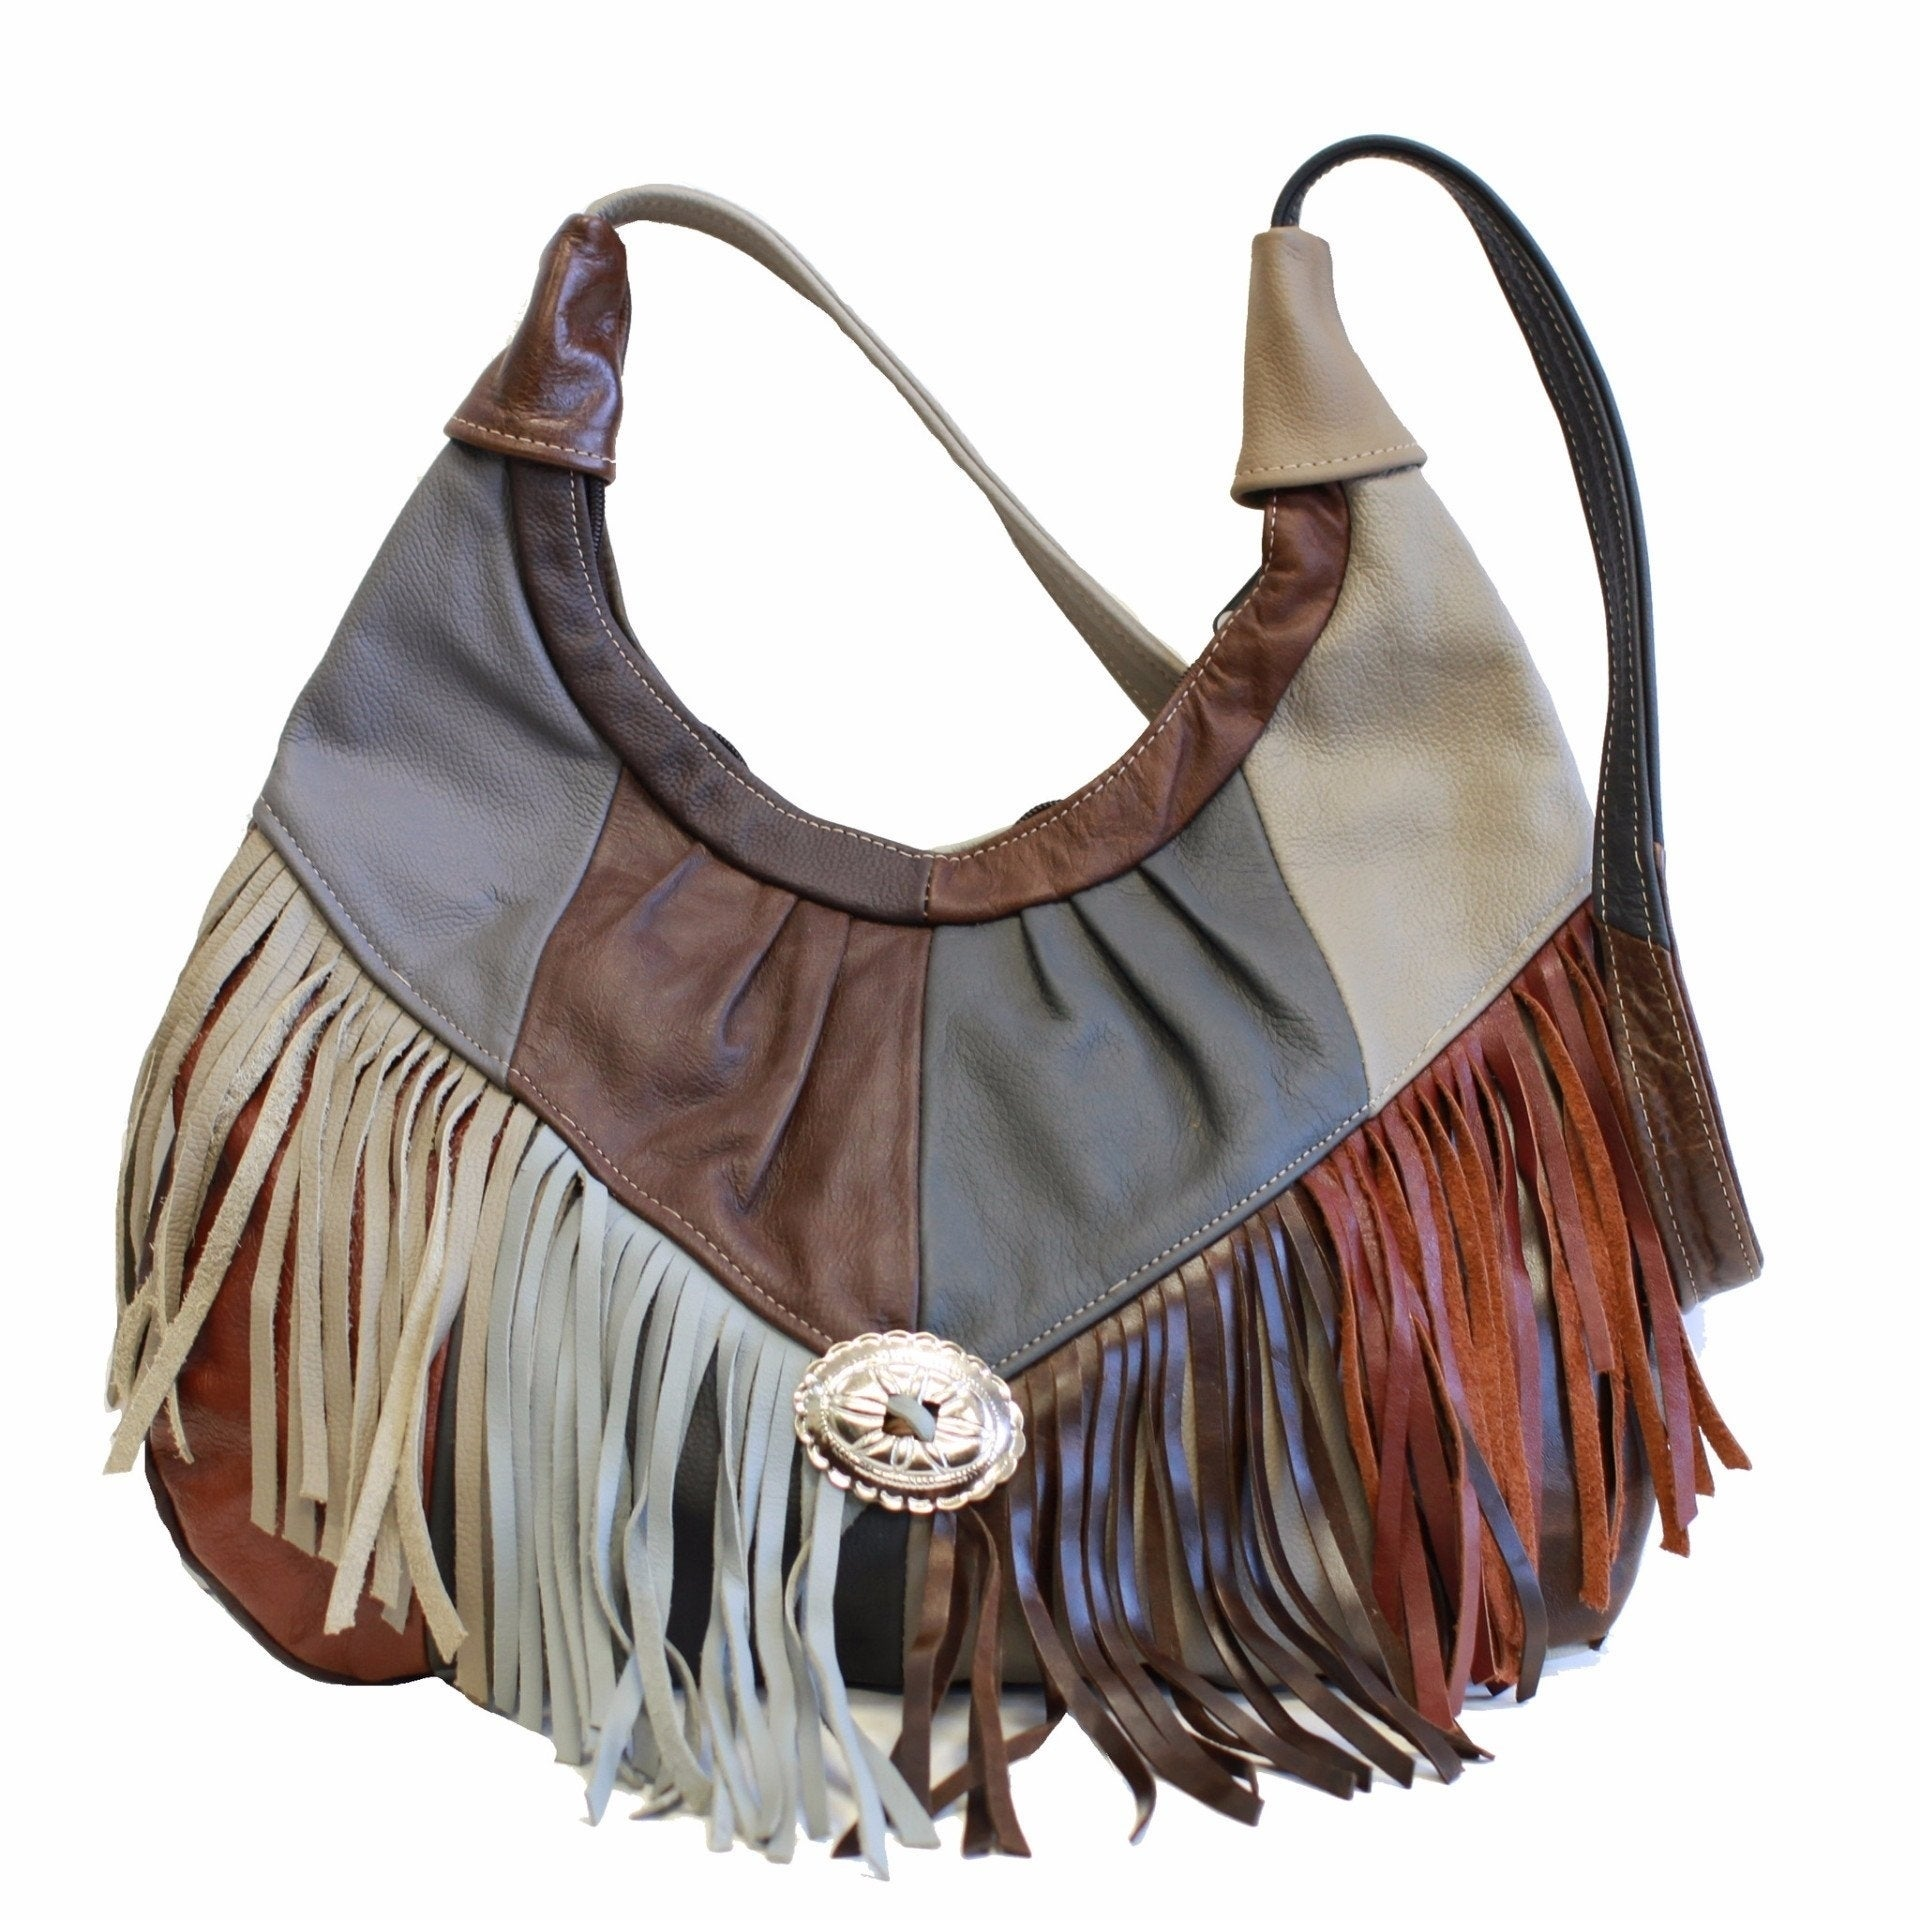 19c14baeb8 Shop AFONiE Mexican Leather Fringe Hobo Handbag - On Sale - Free Shipping  Today - Overstock - 18505978